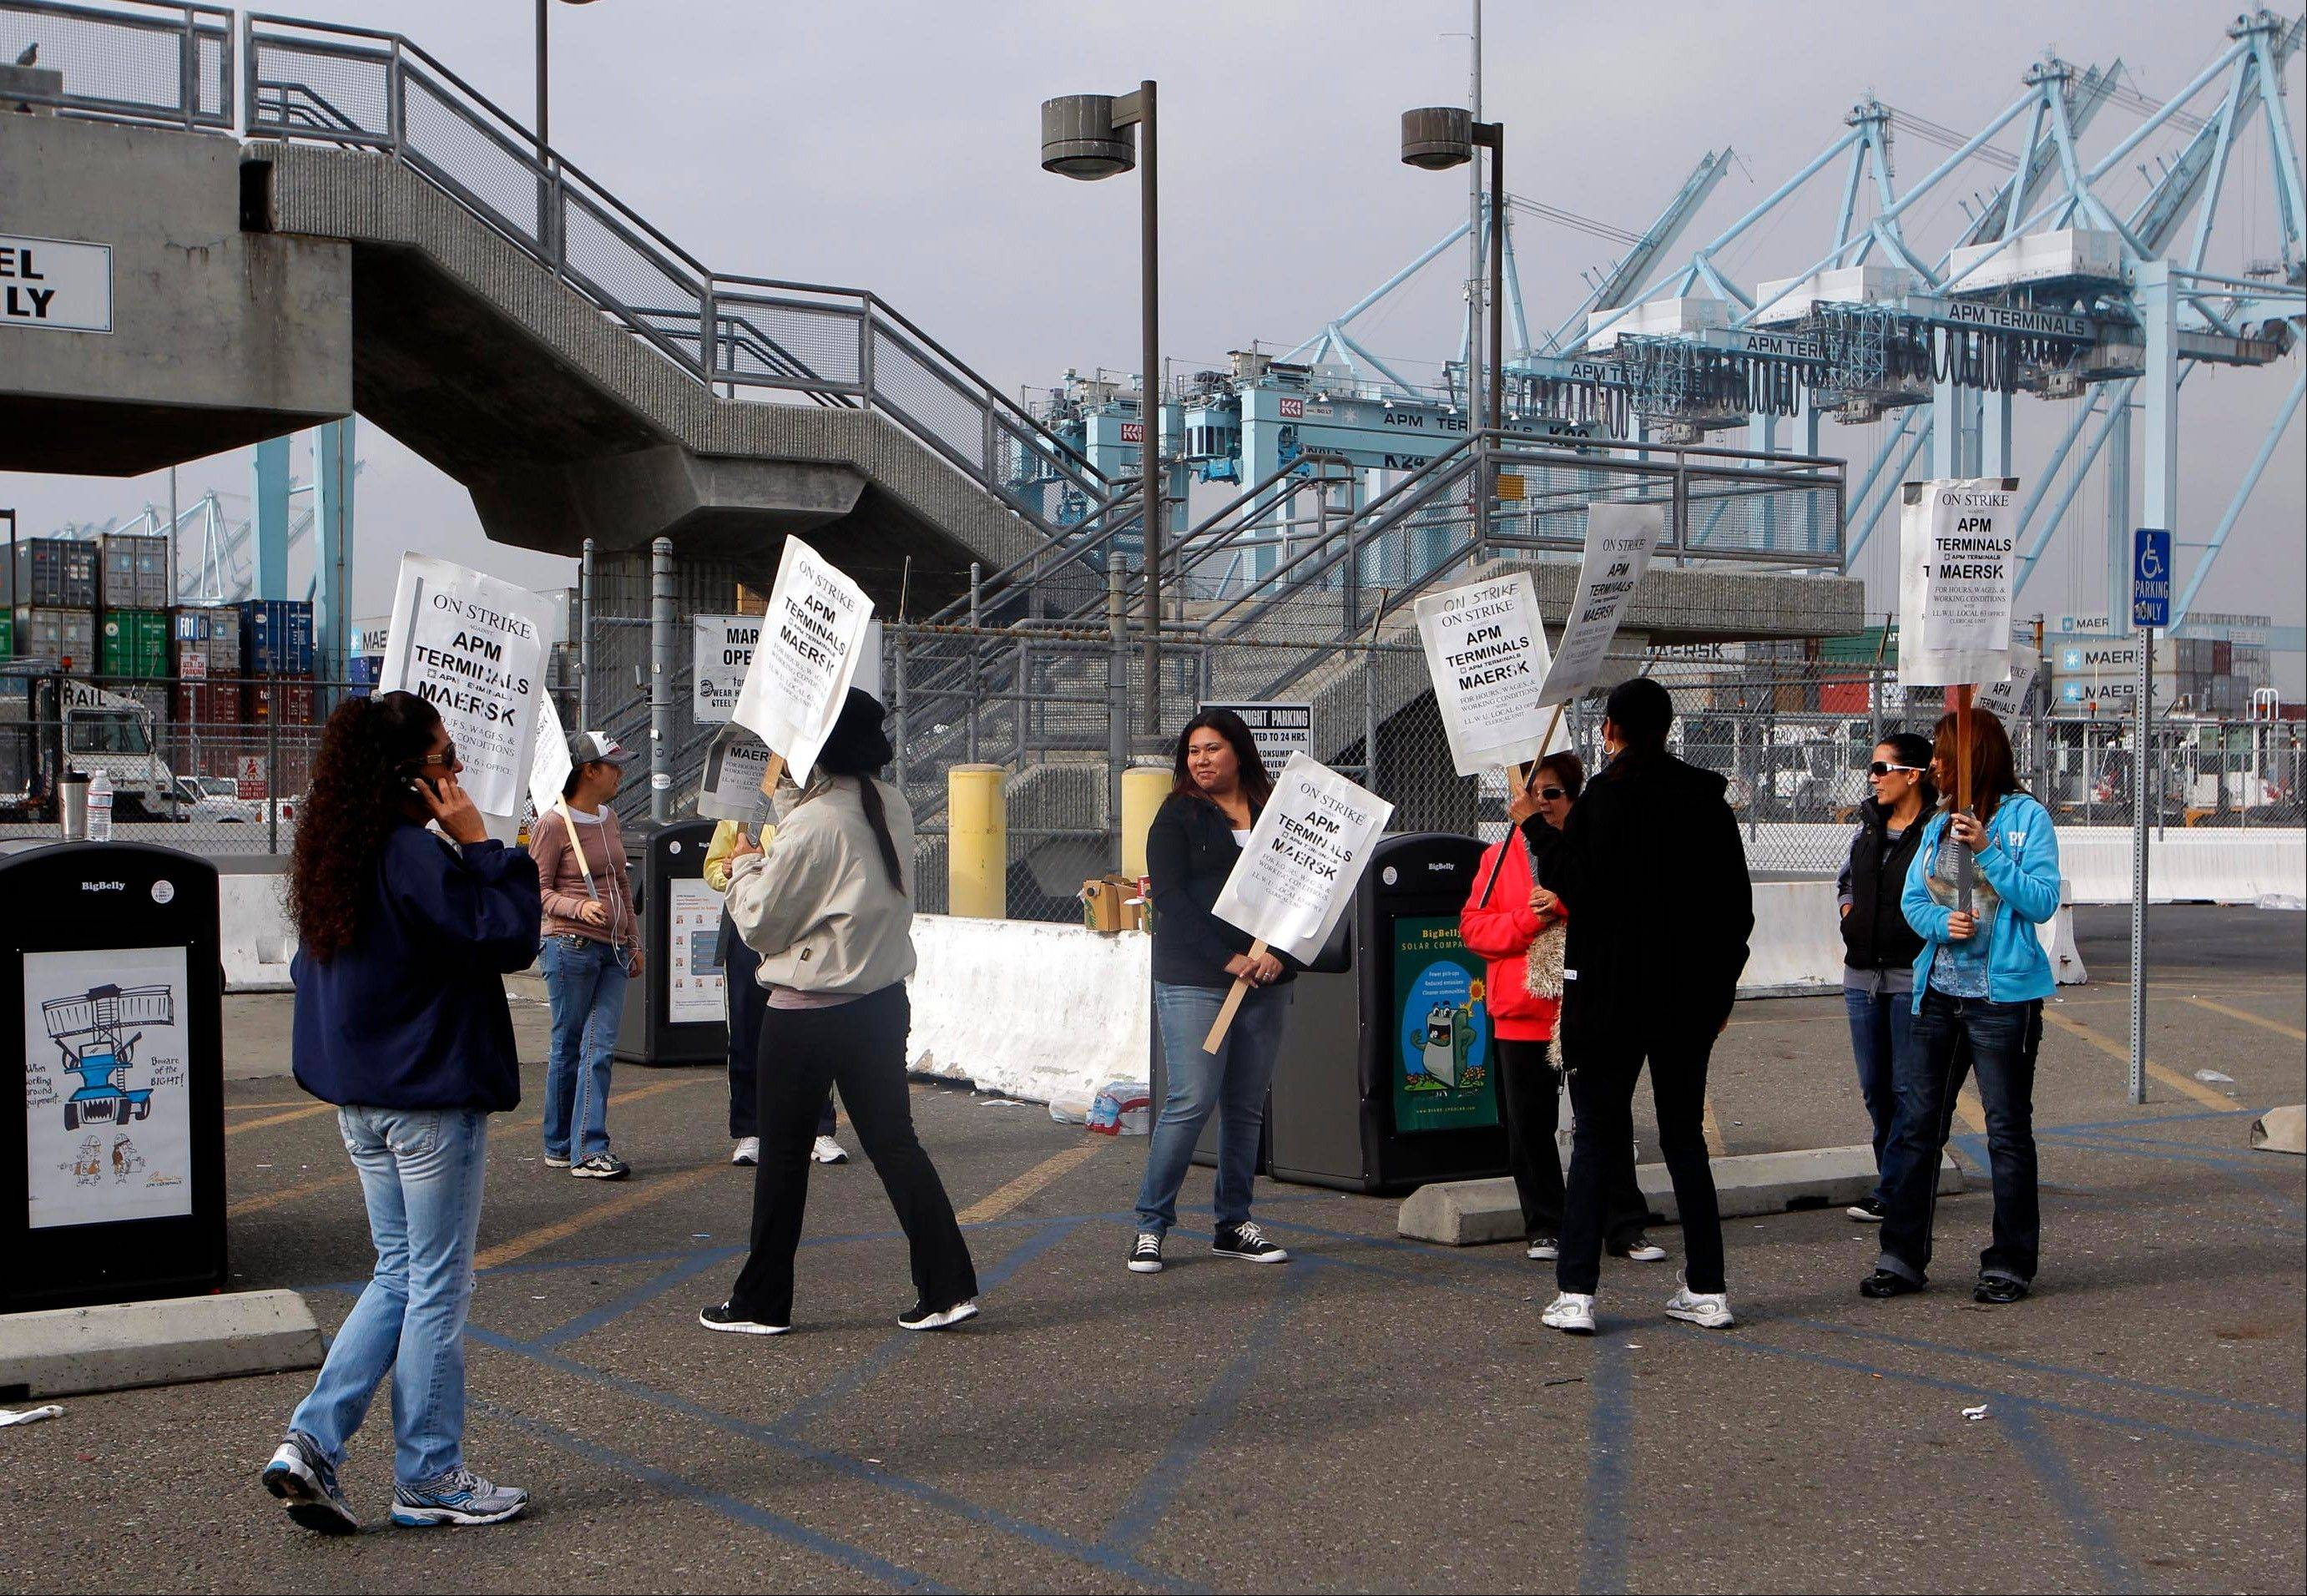 Labor talks are resuming in an effort to end a strike that shut down most of the terminals at the nation's busiest port complex, the Los Angeles and Long Beach harbors, officials say.